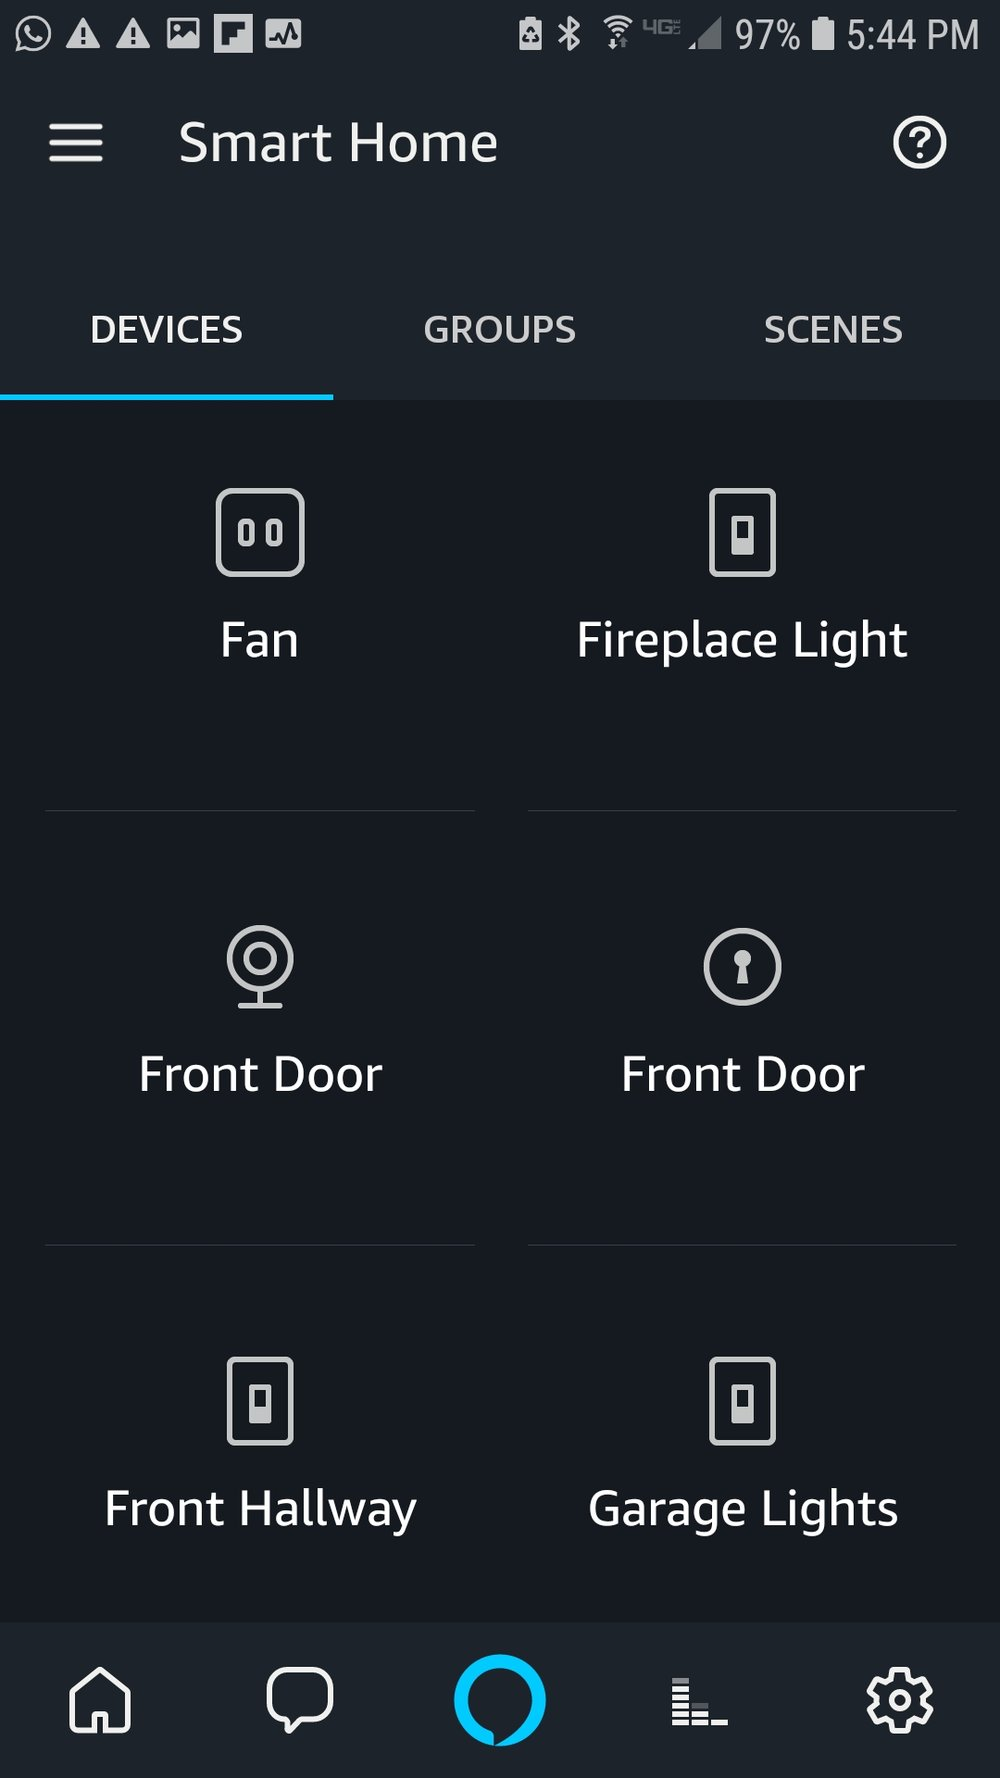 "The skill should automatically search for devices after the Ring account is connected. The Ring front doorbell is represented as ""front door"" the circular camera device on the left hand side of the screen in the middle row. If you see your doorbell as a device in the smart home screen your Ring Smart Video Doorbell has been successfully connected to Amazon Alexa. Just say ""Alexa, show me front door"" and it will pop up on your Amazon Show or Amazon Spot."